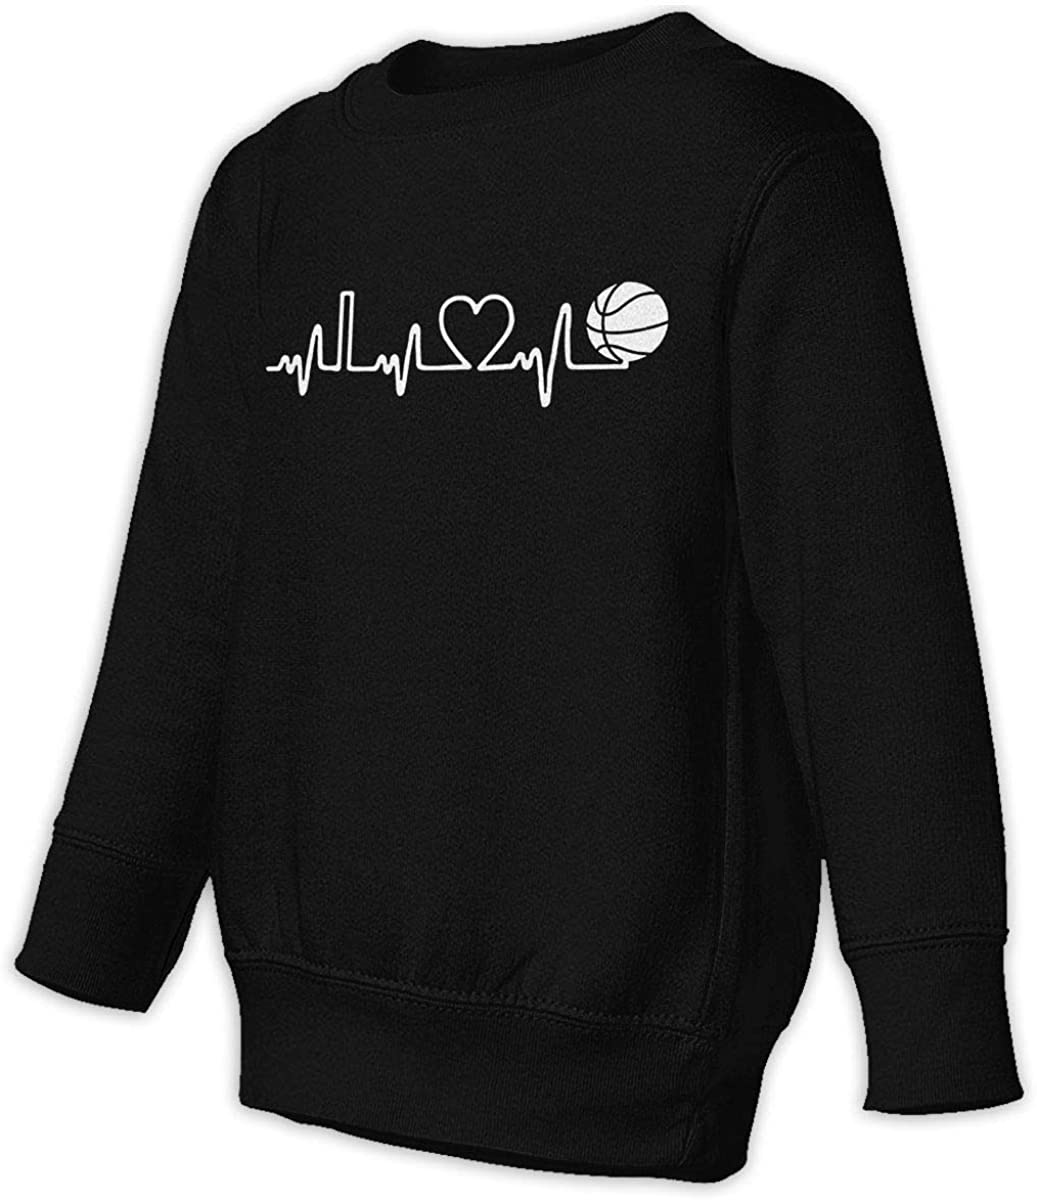 Basketball Heartbeat Boys Girls Pullover Sweaters Crewneck Sweatshirts Clothes for 2-6 Years Old Children